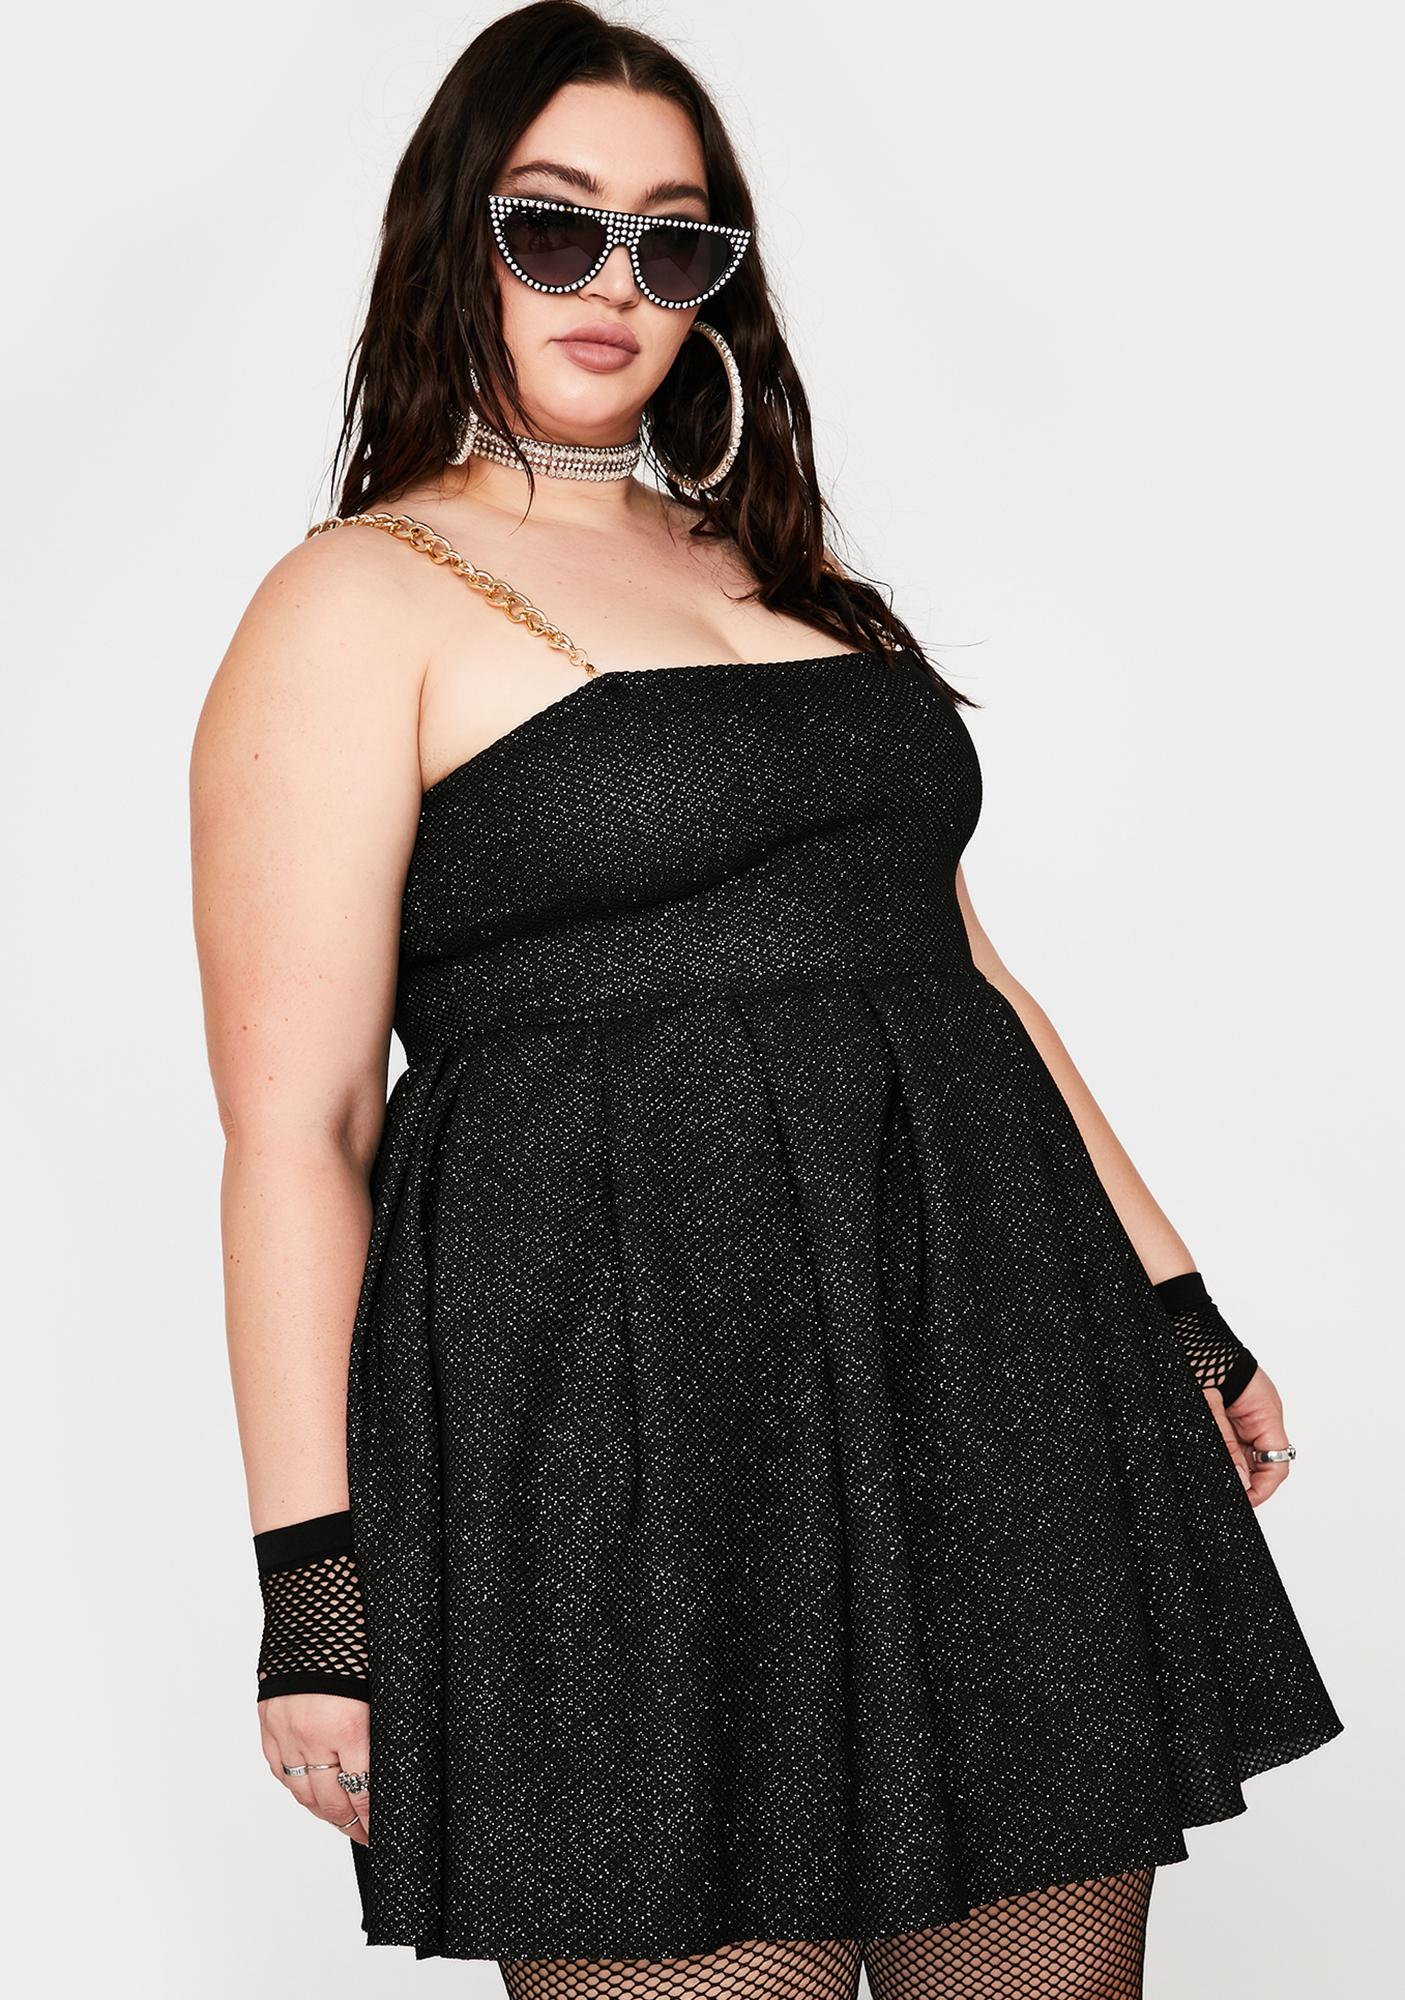 NEW GIRL ORDER Plus Glitter Chain Strap Dress